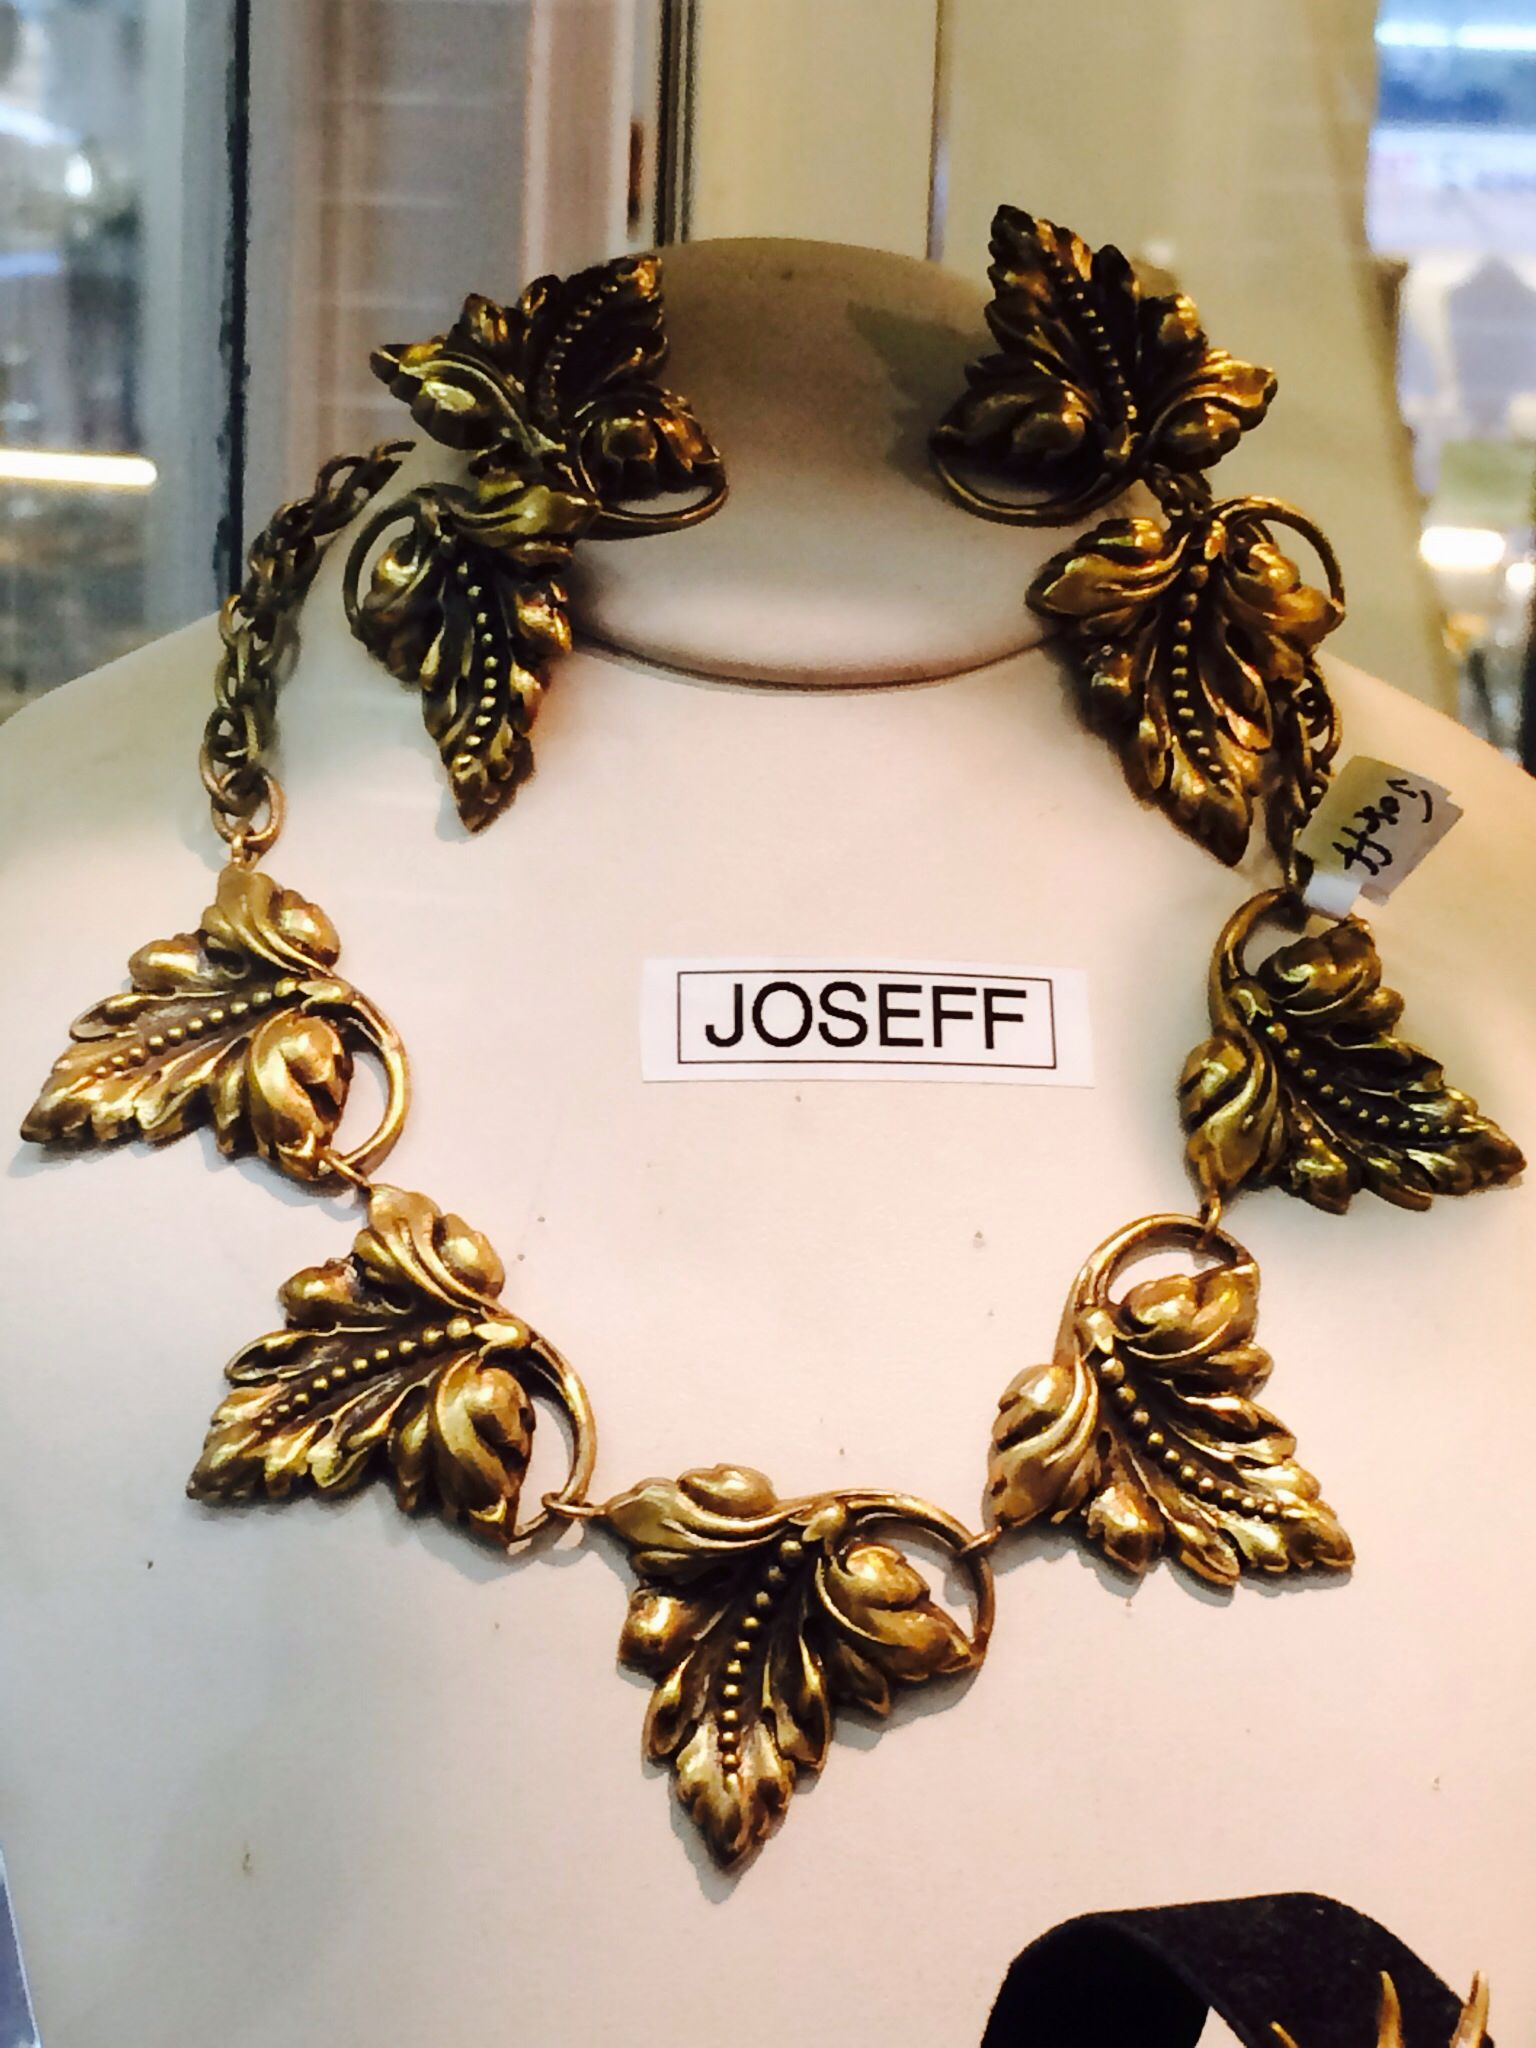 Vintage Joseff Necklace Earrings At Jeweldiva Com Or Our Galleries At Nyshowplace Nyc Vintage Designer Jewelry Handb Jewelry Vintage Signs Vintage